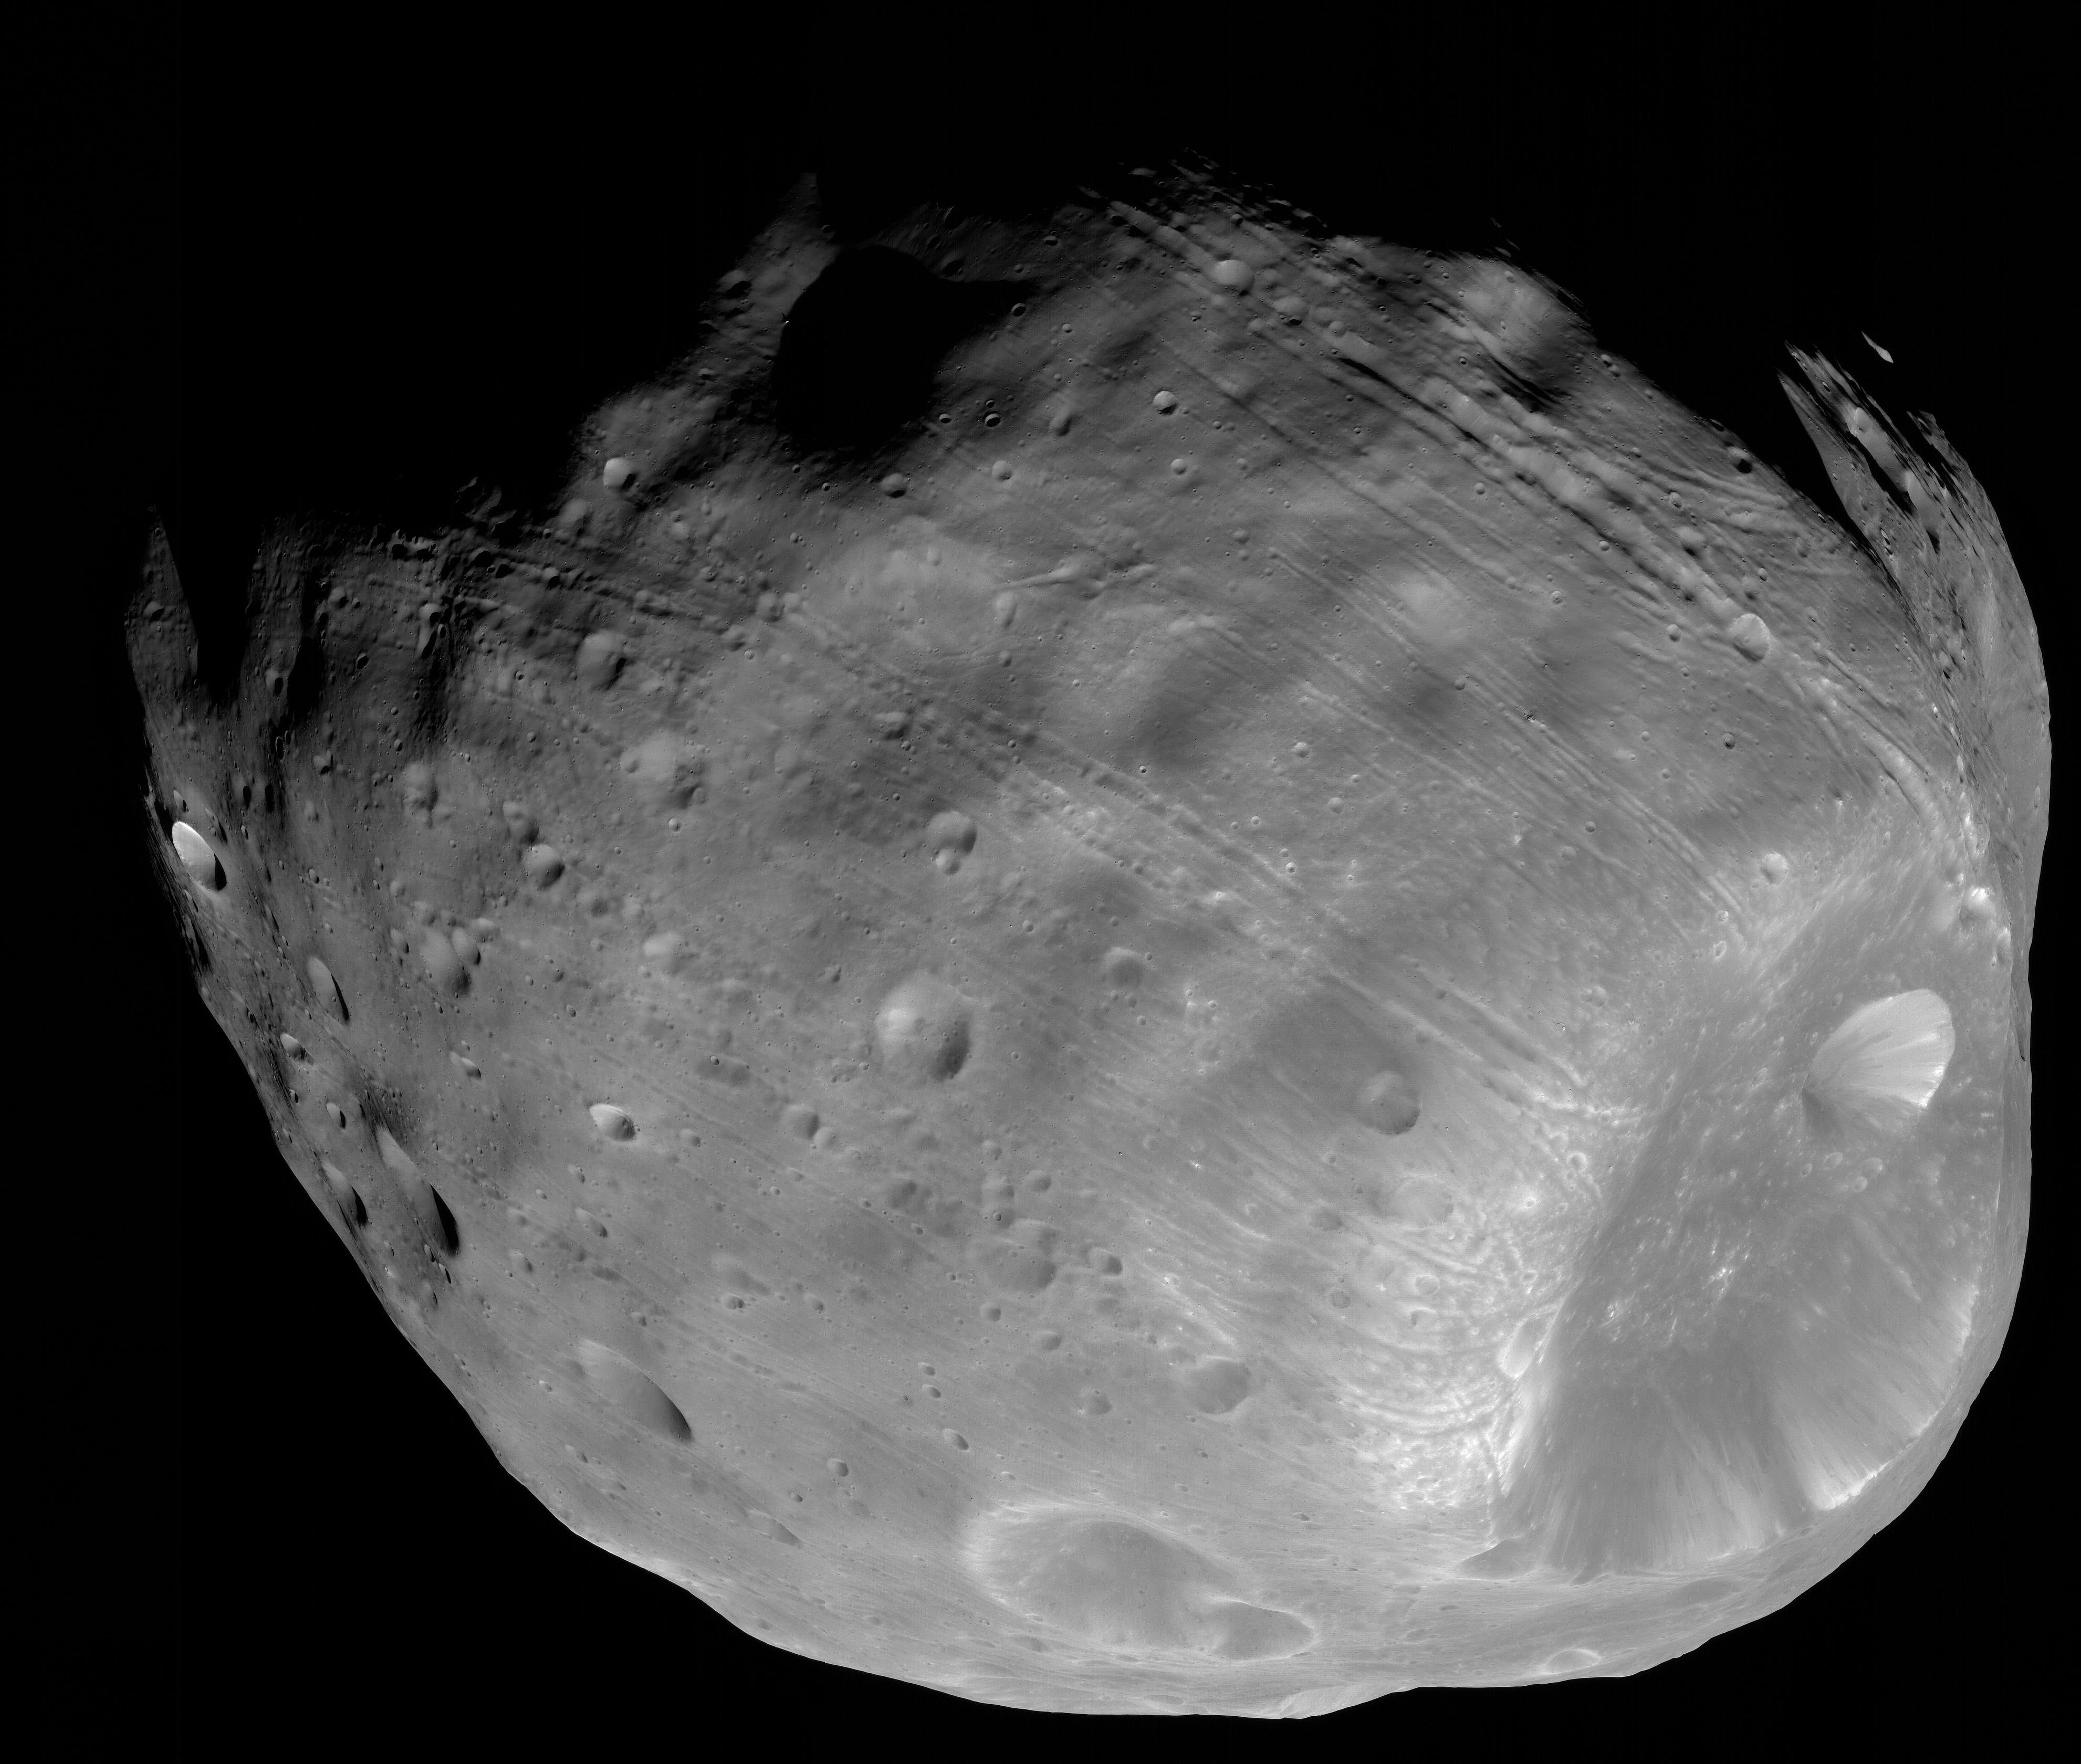 The Larger Of Mars Two Moons Phobos Is Featured In This Stunning Black And White Image The Giant Feature On The Bottom Rig Mars Moons Mars Gravity Planets